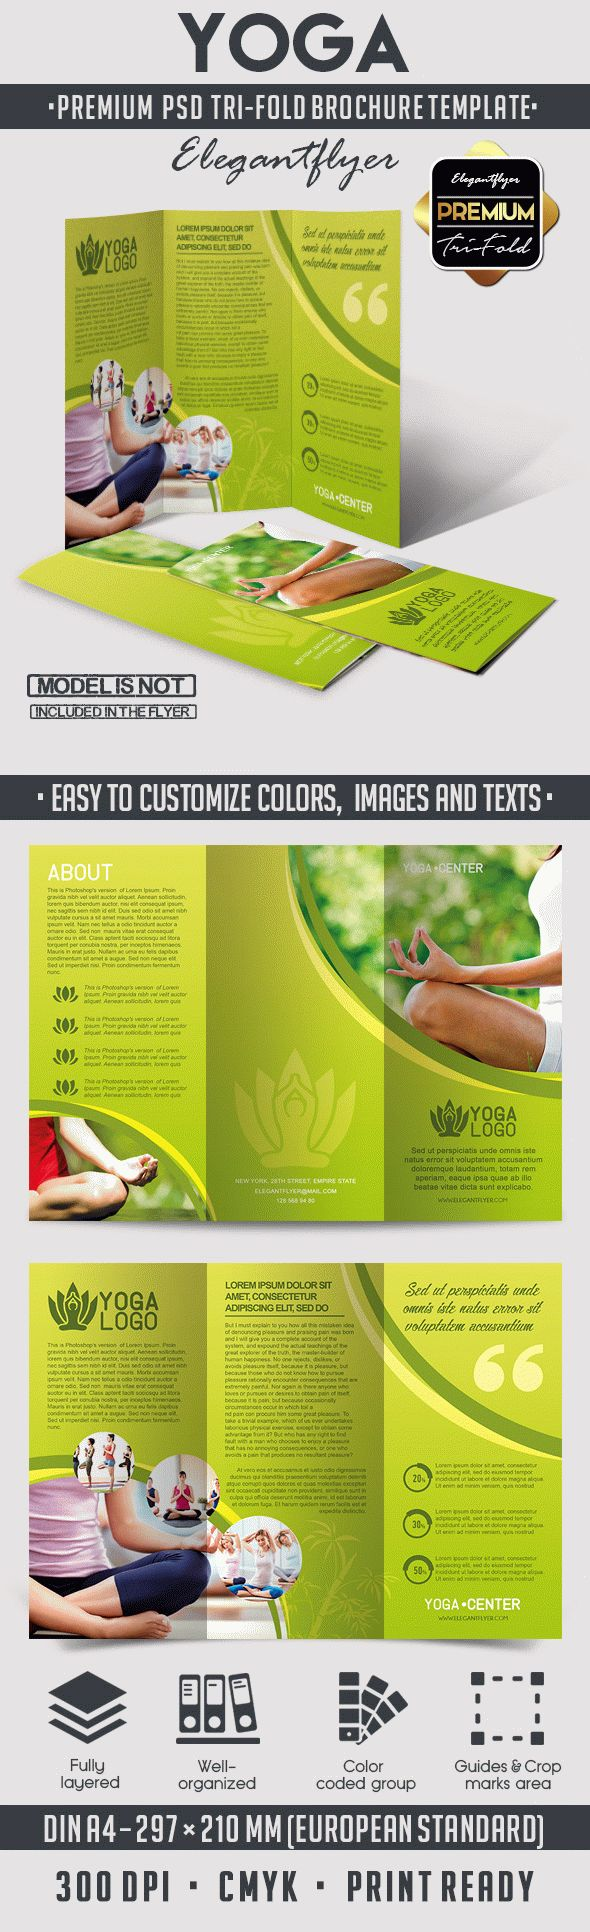 Yoga tri fold brochure psd template by elegantflyer for Tri fold brochure template psd